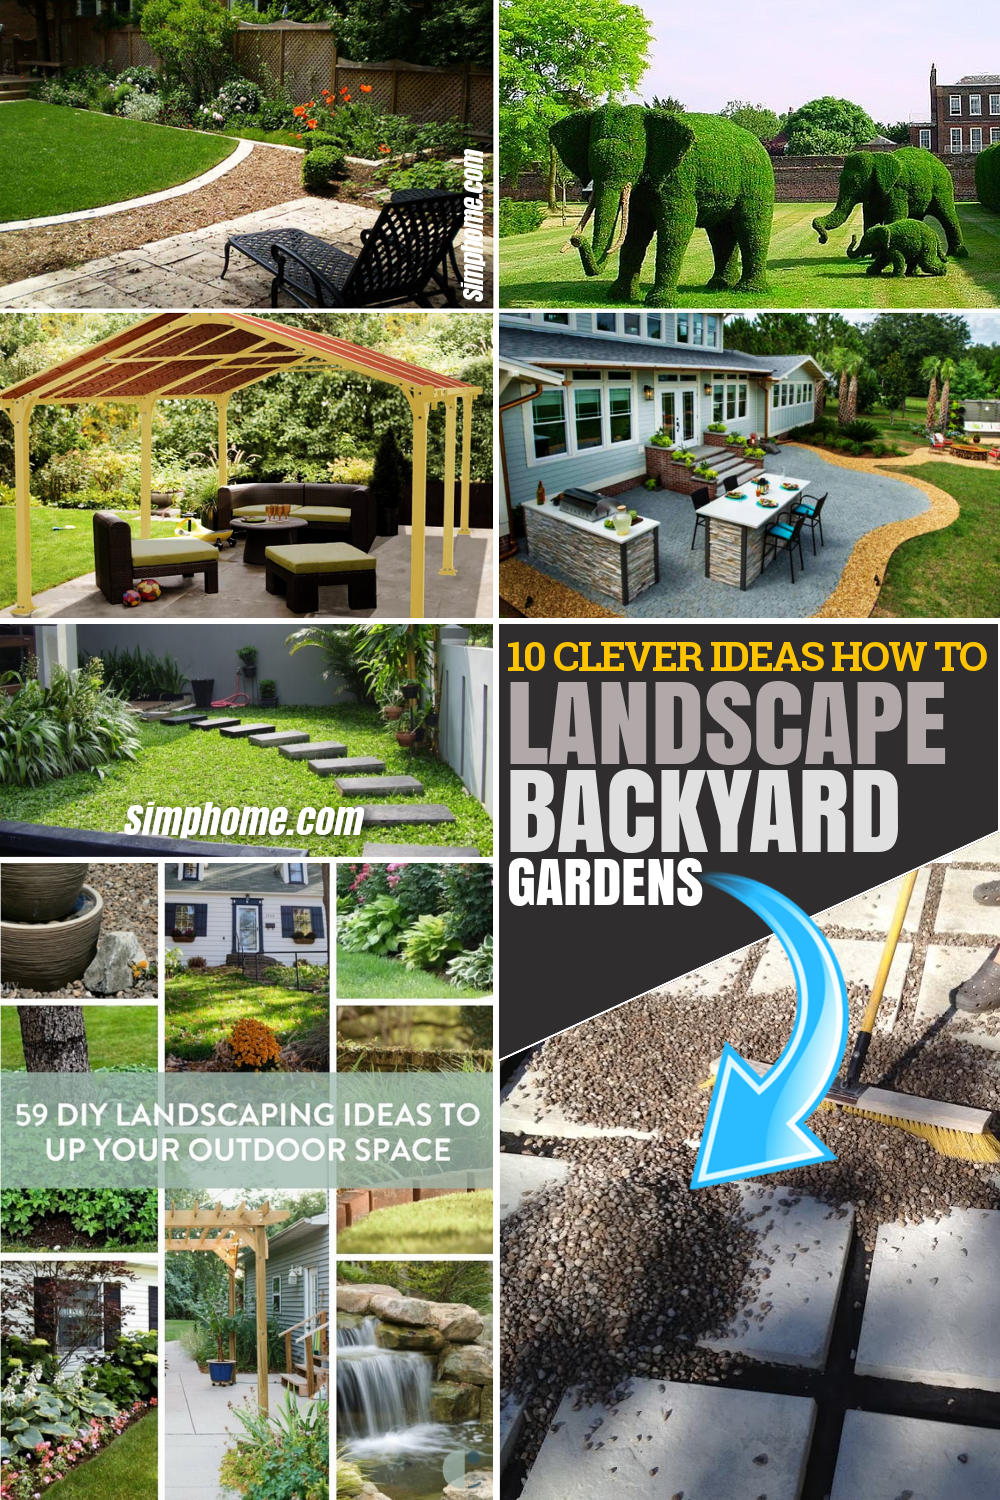 10 Clever DIY Ideas How to Landscaping Backyard Garden via Simphome.com Featured Pinterest Image